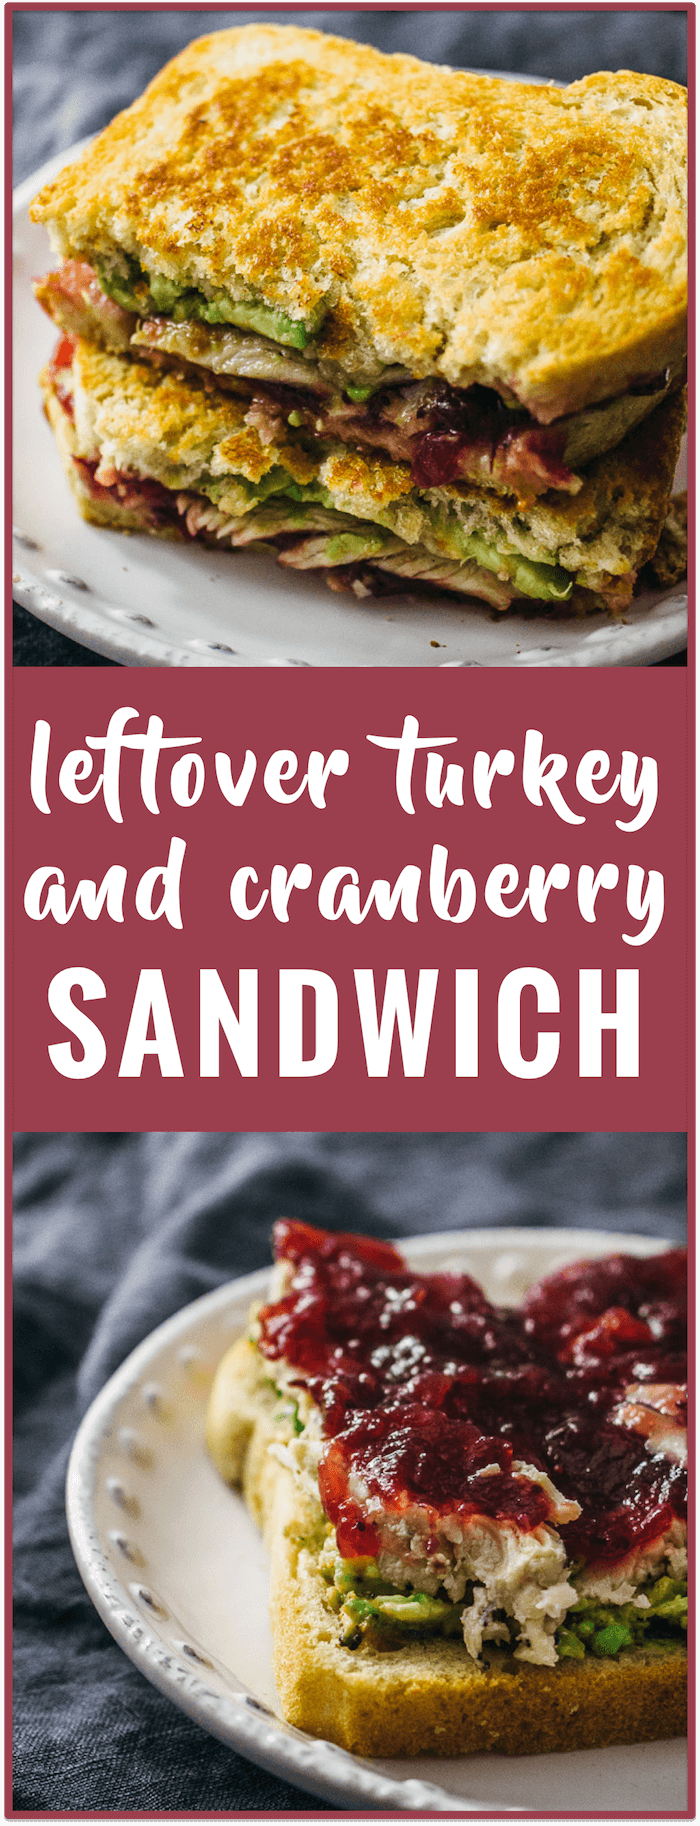 Leftover turkey and cranberry sandwich recipe - Use up your Thanksgiving leftovers with this crispy skillet sandwich loaded with sliced turkey, cranberry sauce, and mashed avocado.